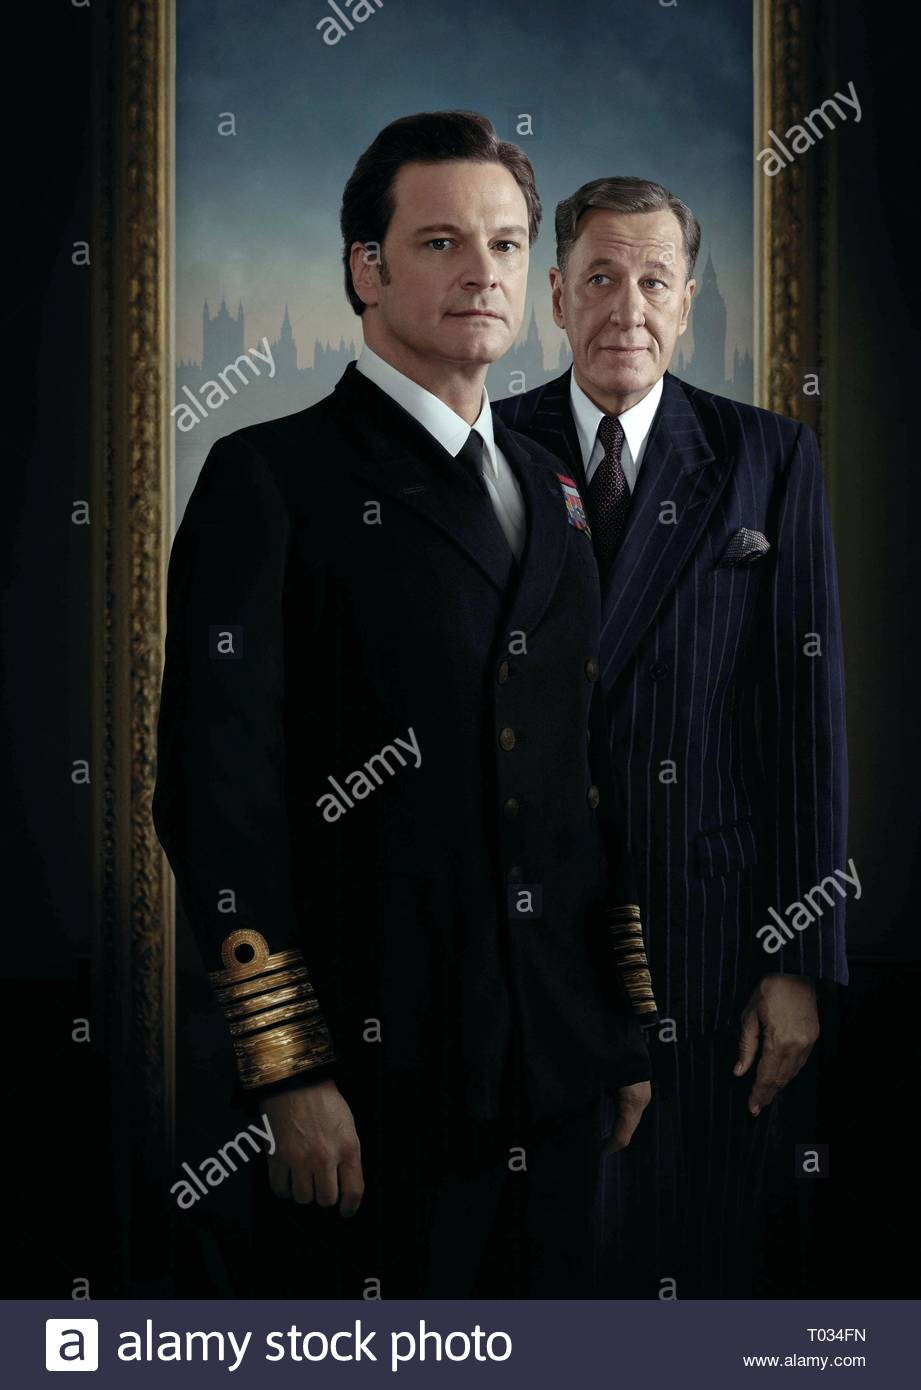 COLIN FIRTH, GEOFFREY RUSH, THE KING'S SPEECH, 2010 - Stock Image